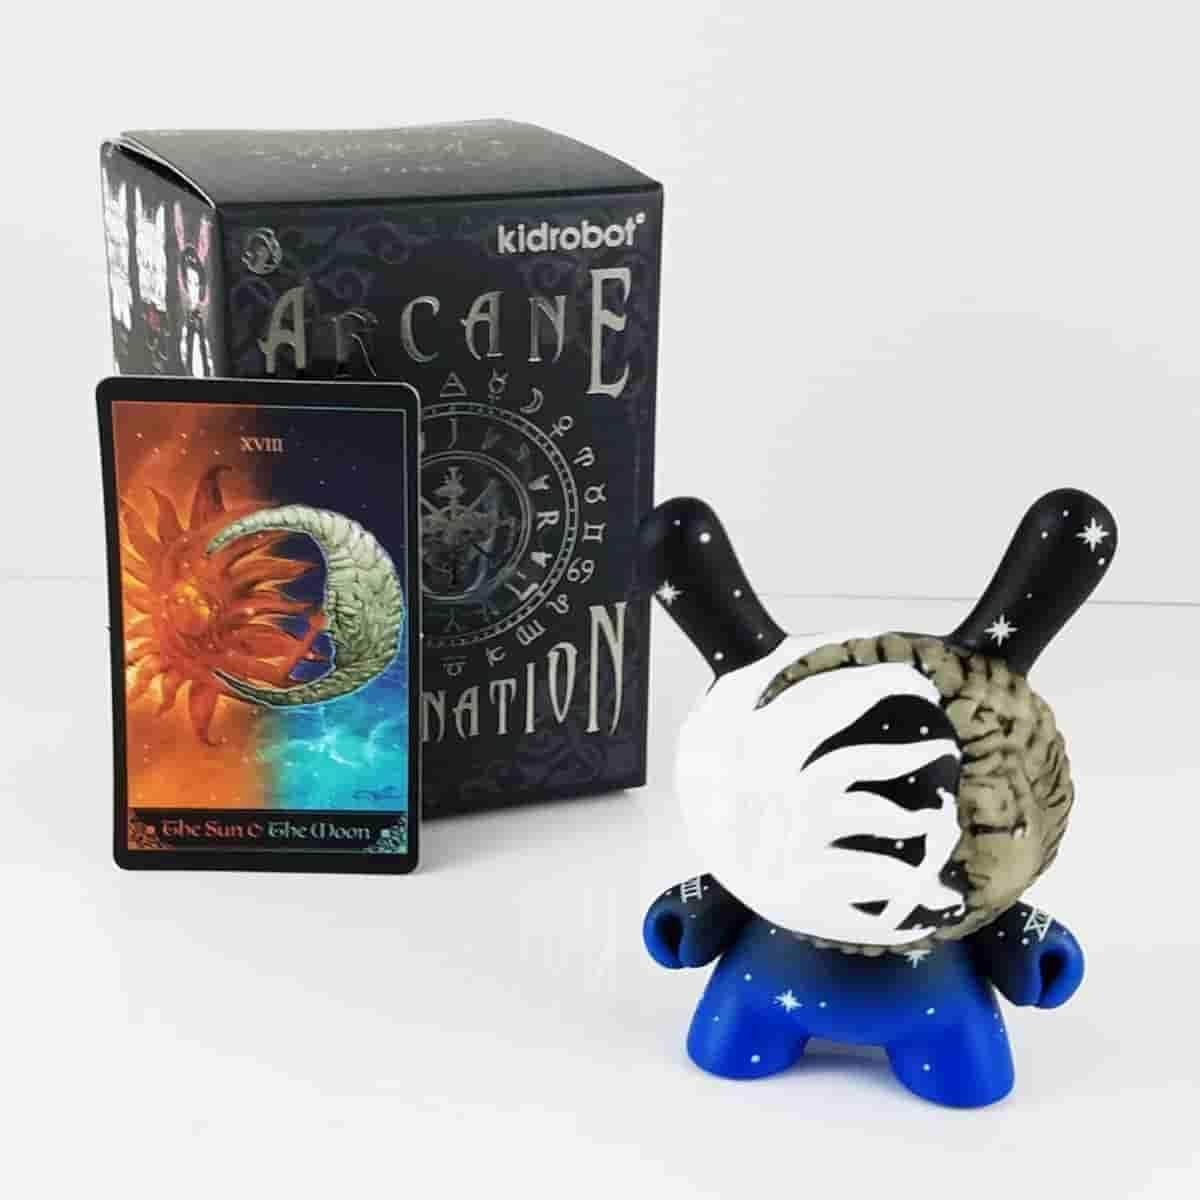 Sun and Moon - Arcane Divination Dunny Series by Kidrobot - IamRetro.com